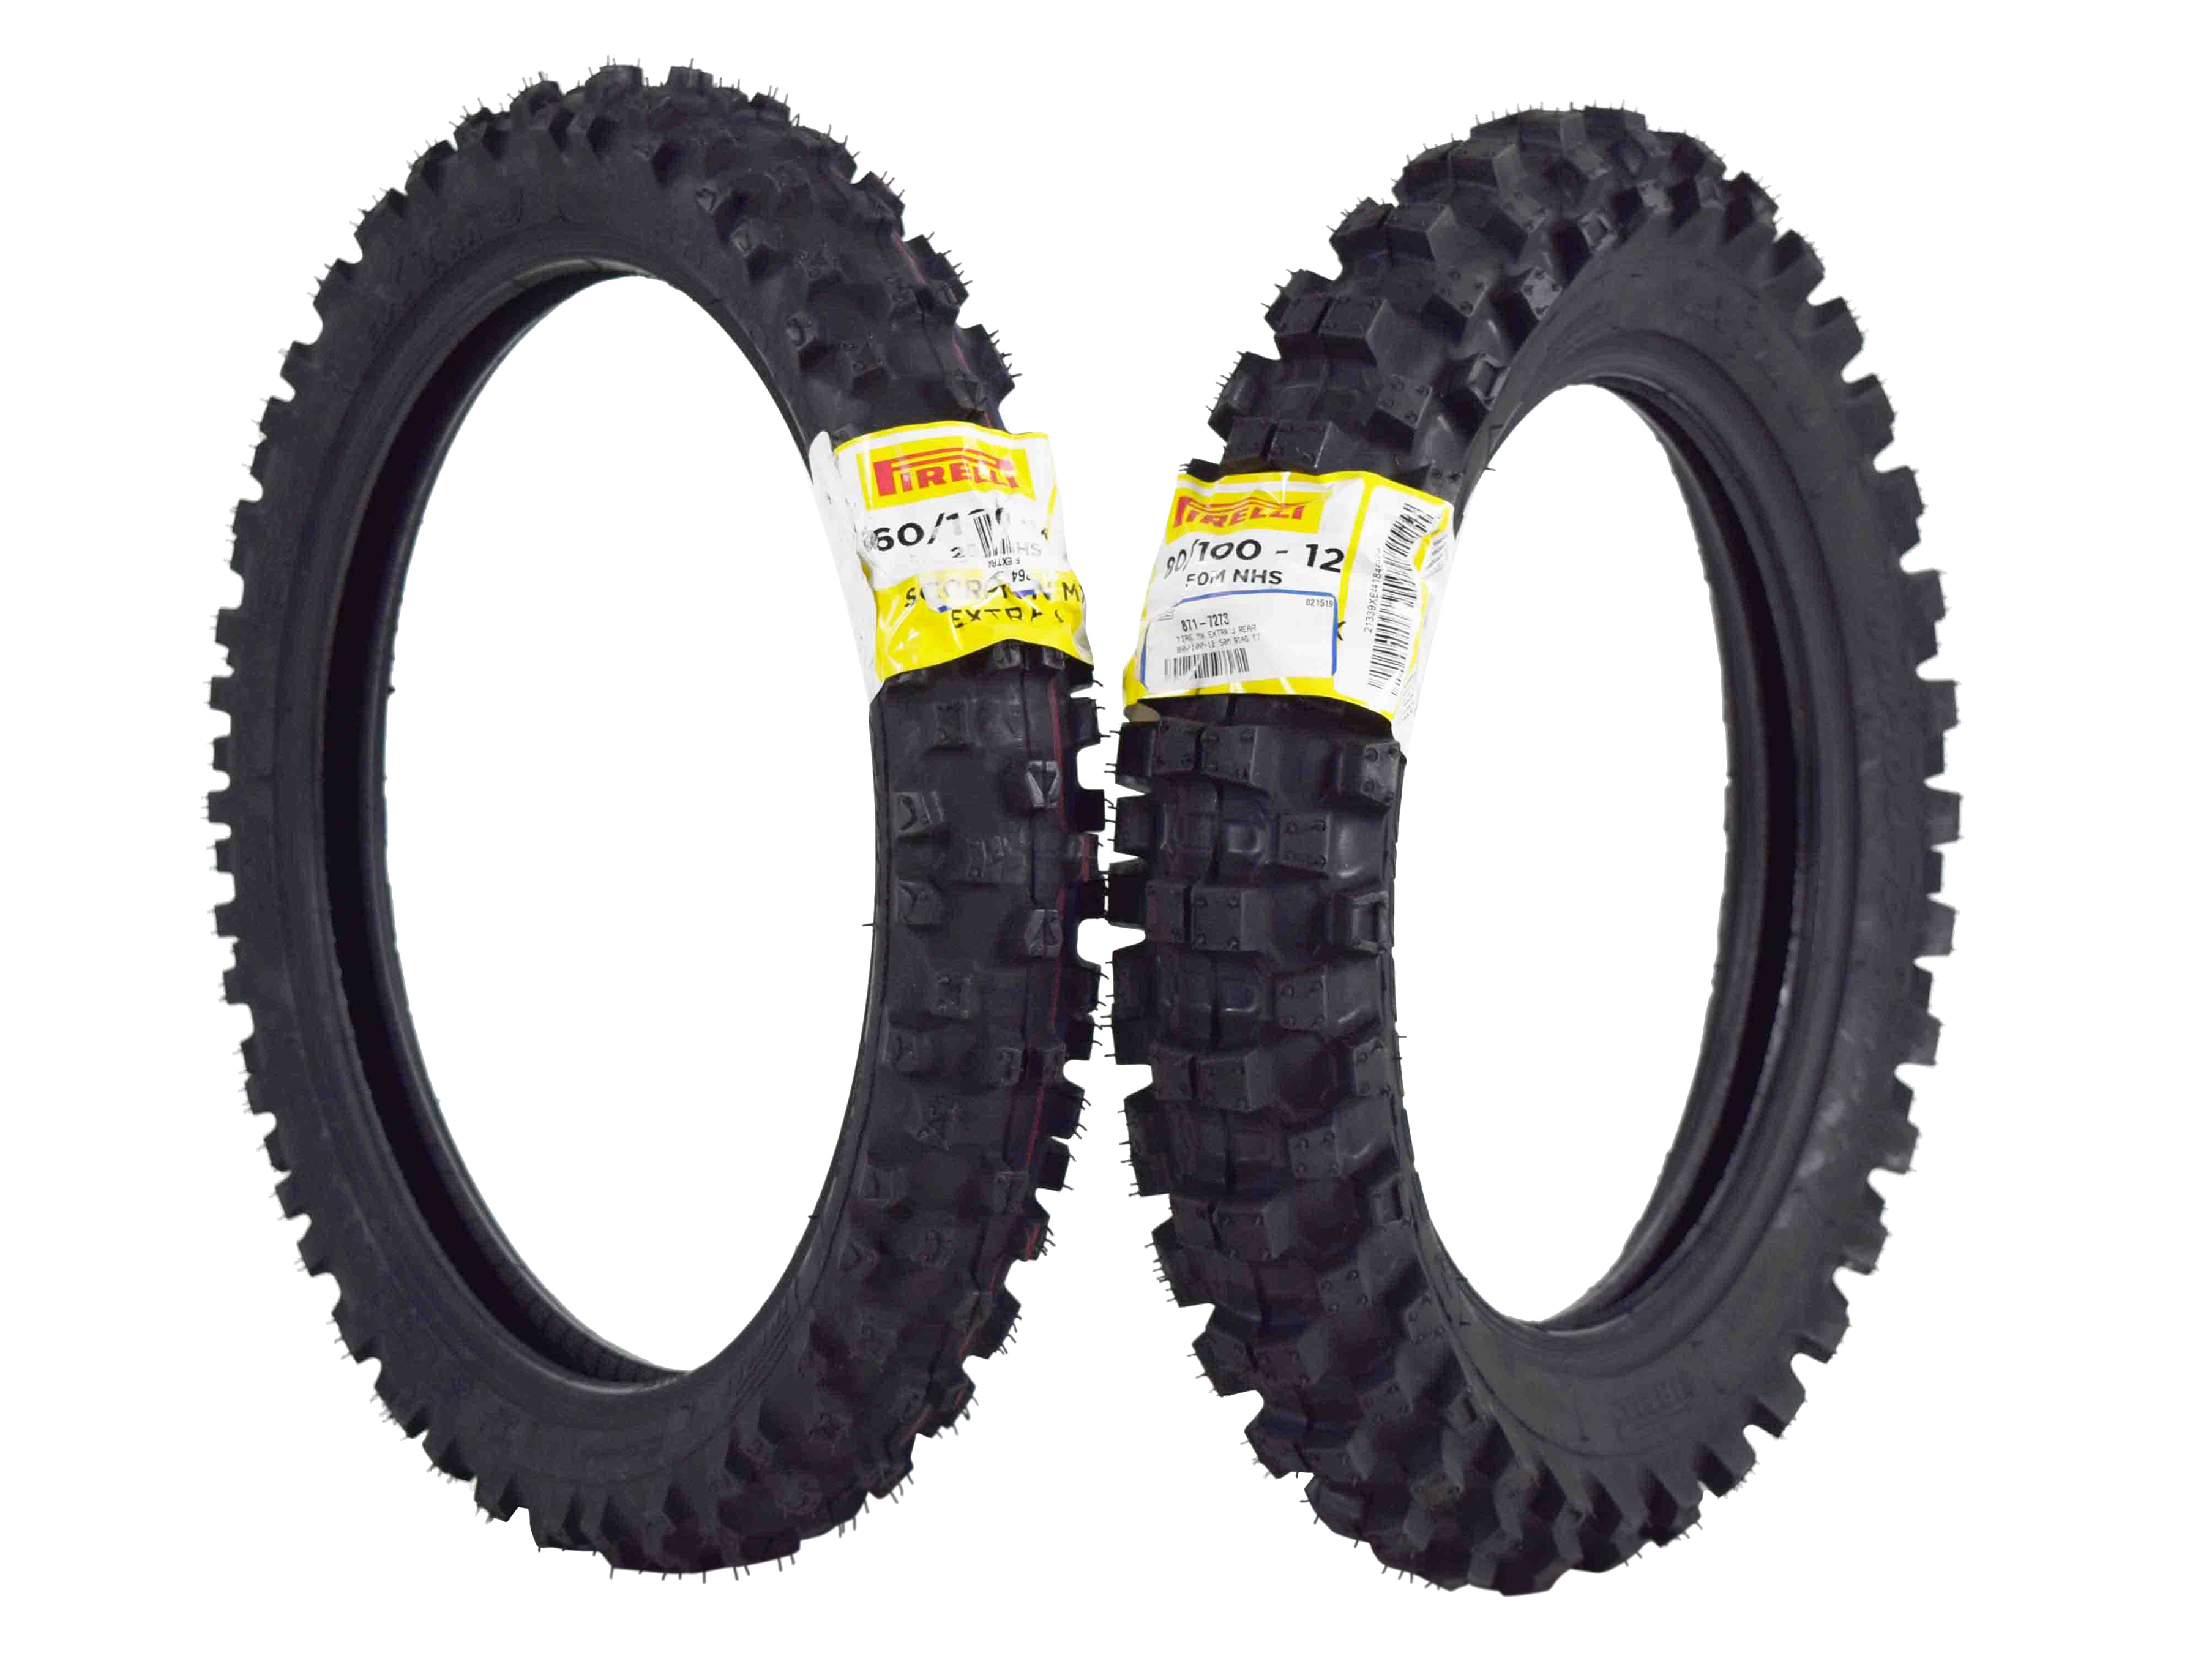 Pirelli-Scorpion-MX-Extra-J-60-100-14-Front-80-100-12-Rear-Pit-Bike-Motorcycle-Tires-Set-image-1